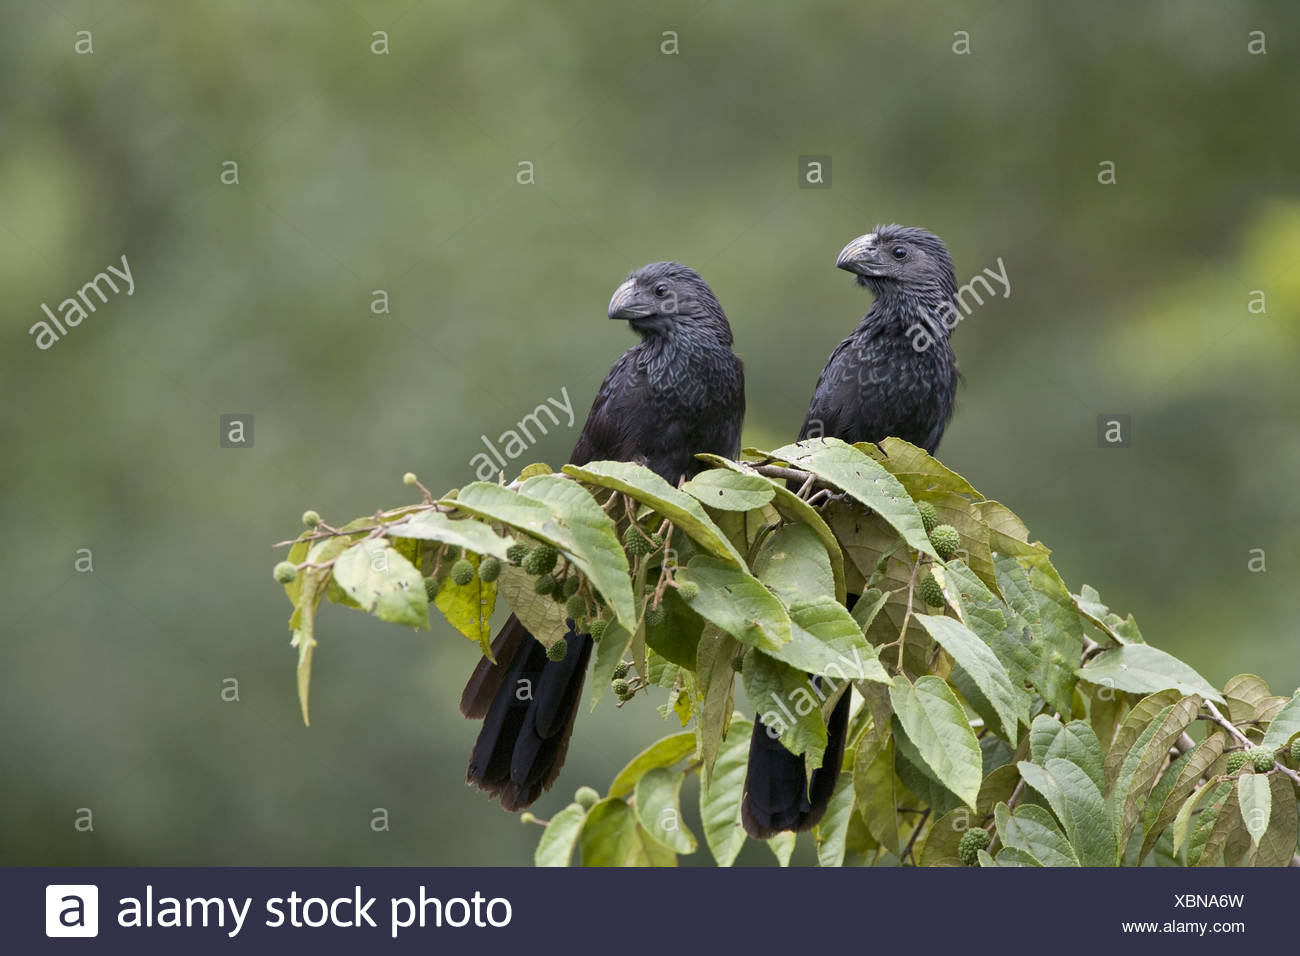 Groove-billed Ani (Crotophaga sulcirostris) adult pair, perched on branch, Cayo District, Belize - Stock Image